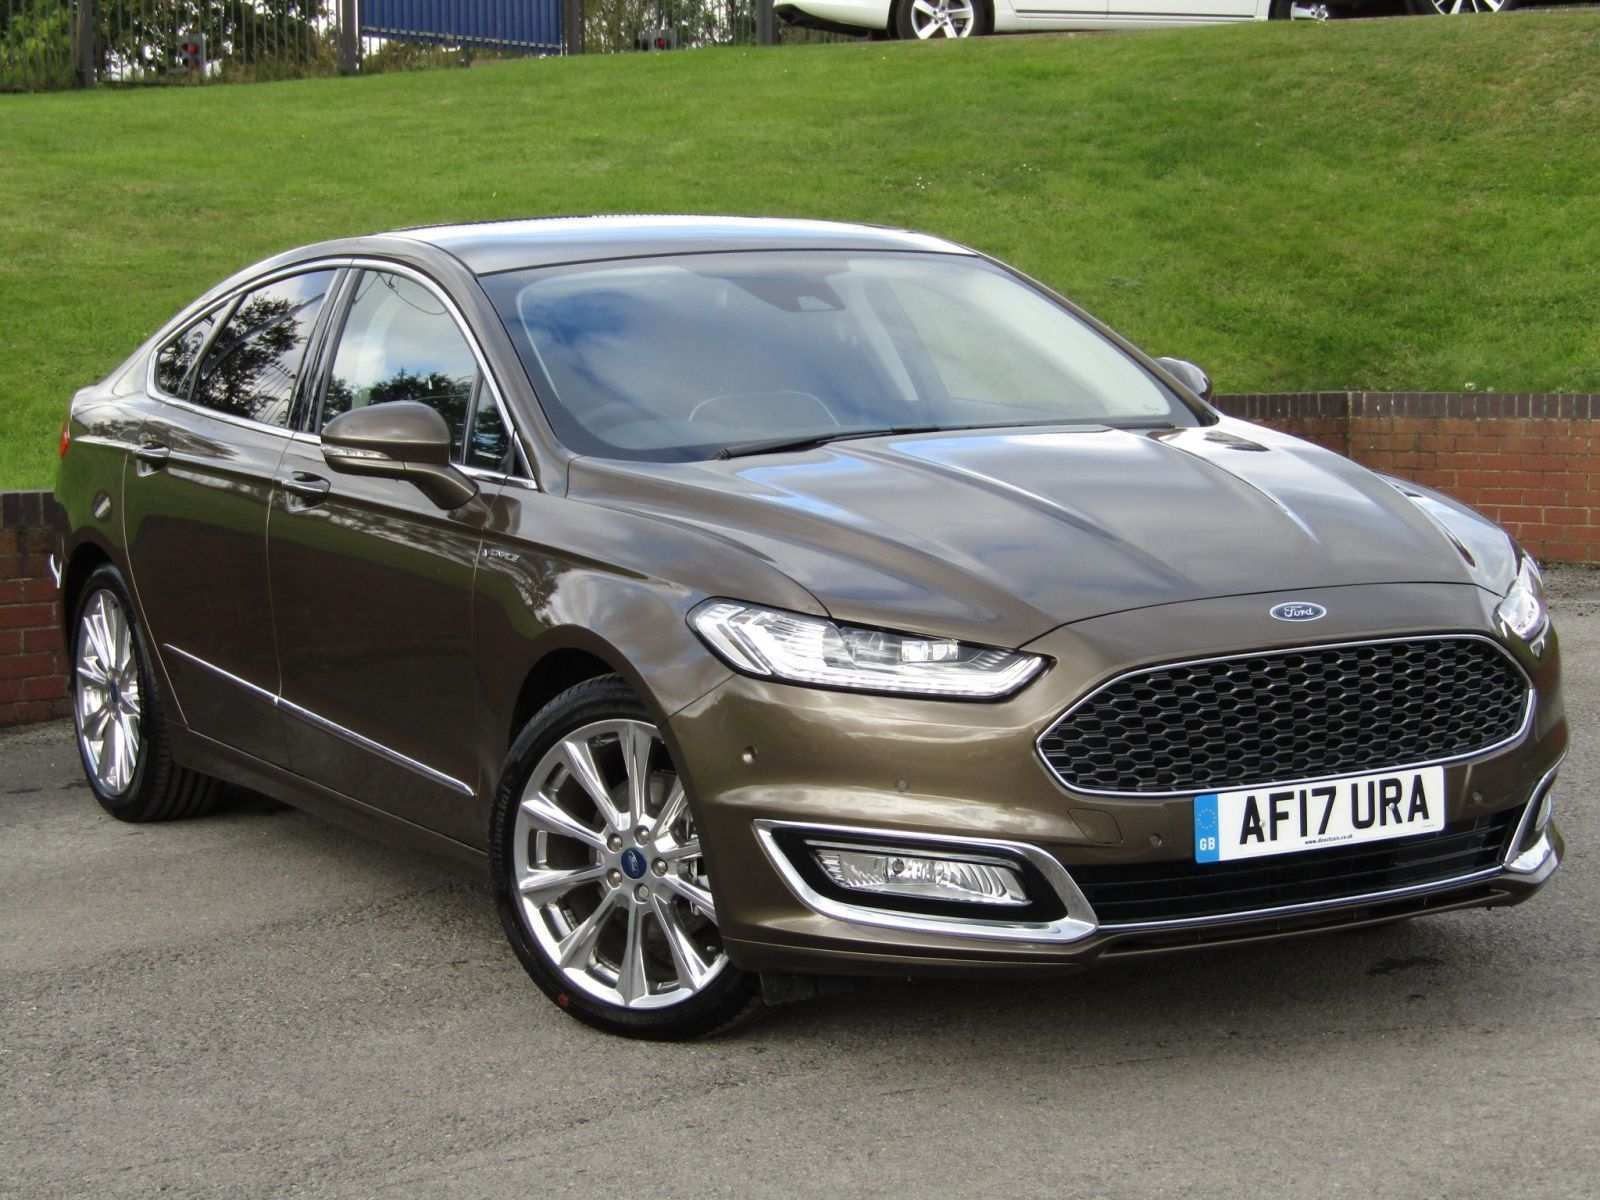 94 Great 2020 Ford Mondeo Vignale Price with 2020 Ford Mondeo Vignale